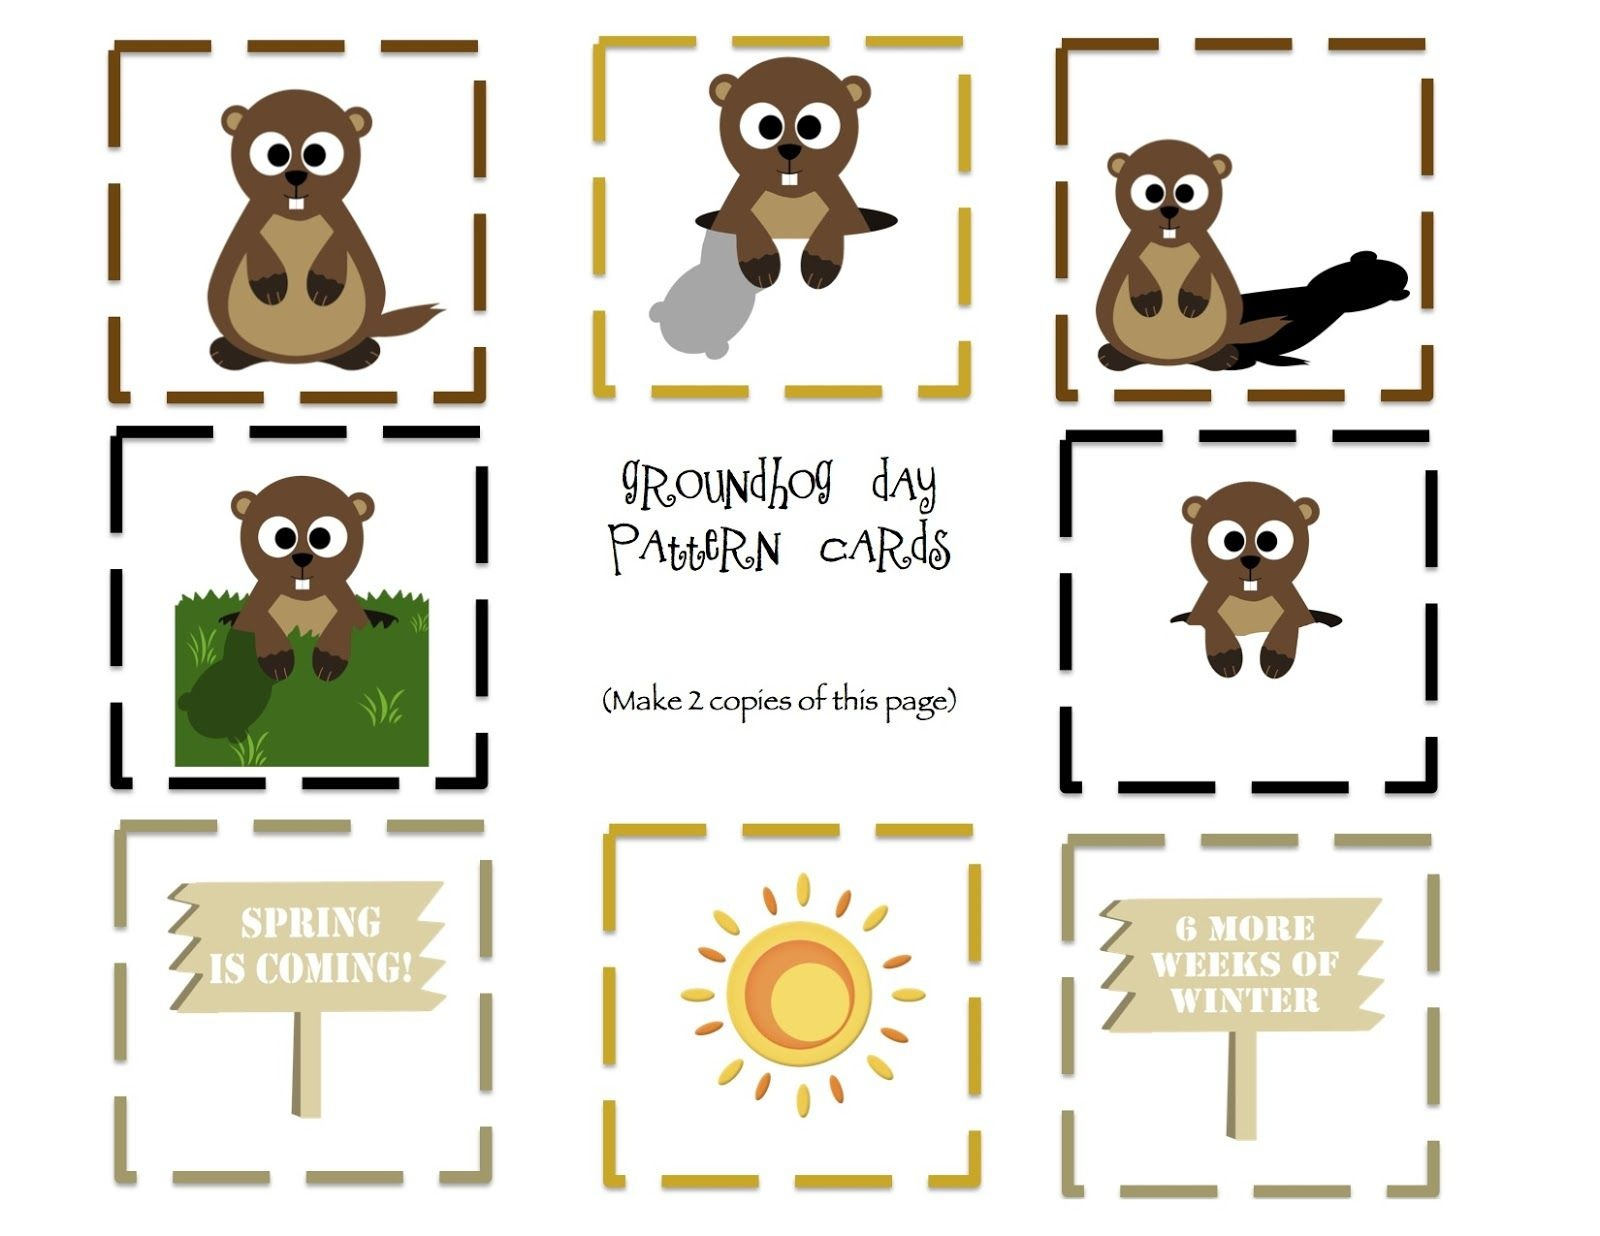 Free Preschool Printables: Groundhog Day Theme | Jan And Feb School - Free Groundhog Printables Preschool